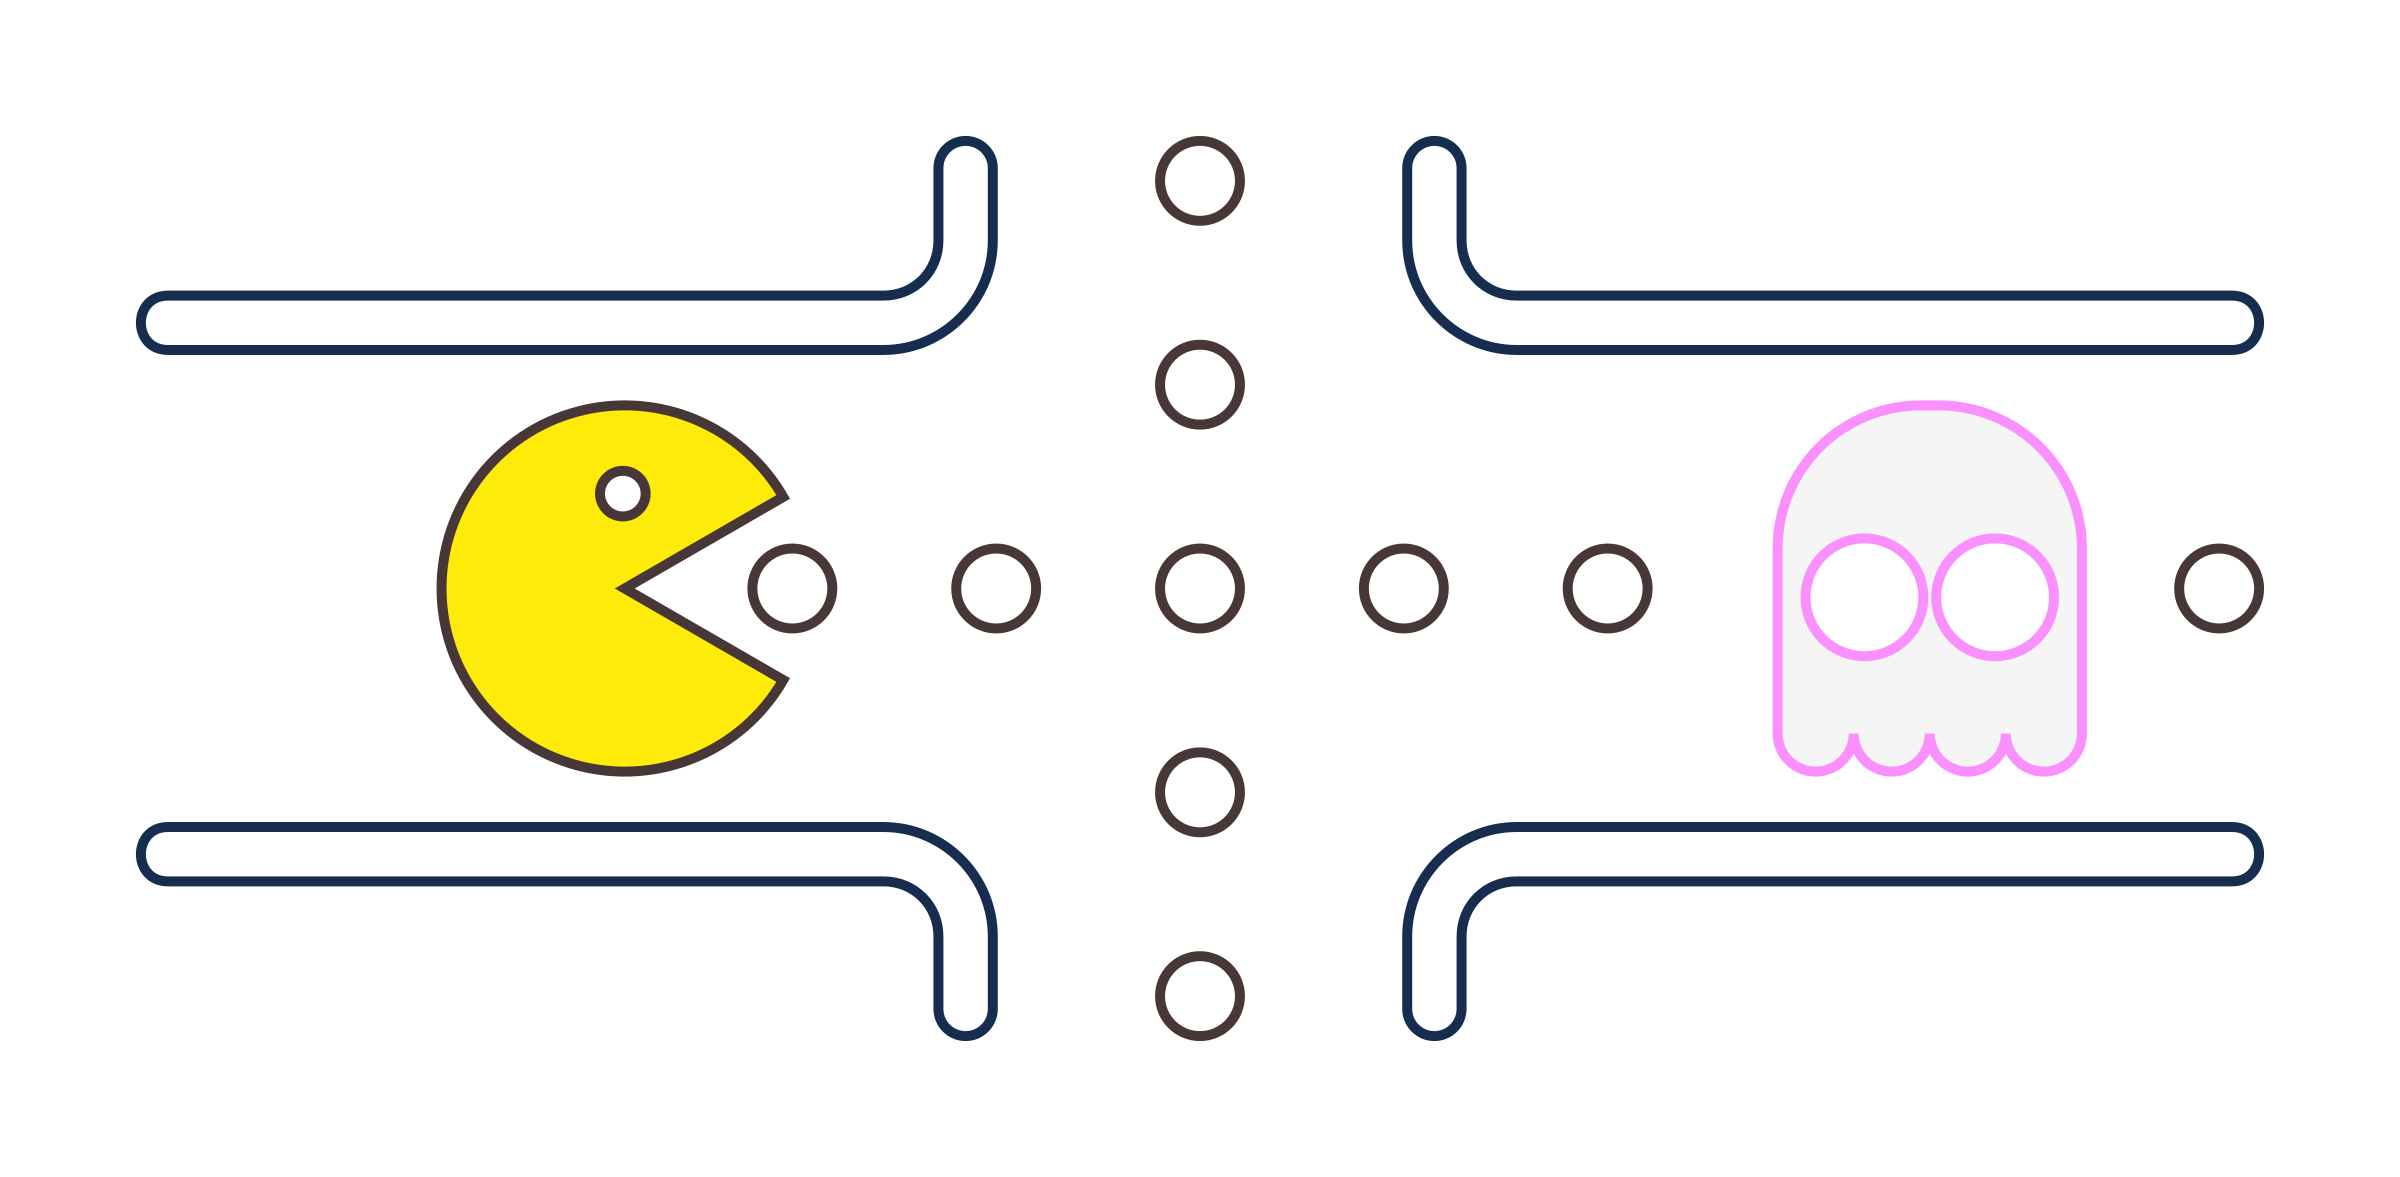 PacMan by m1981